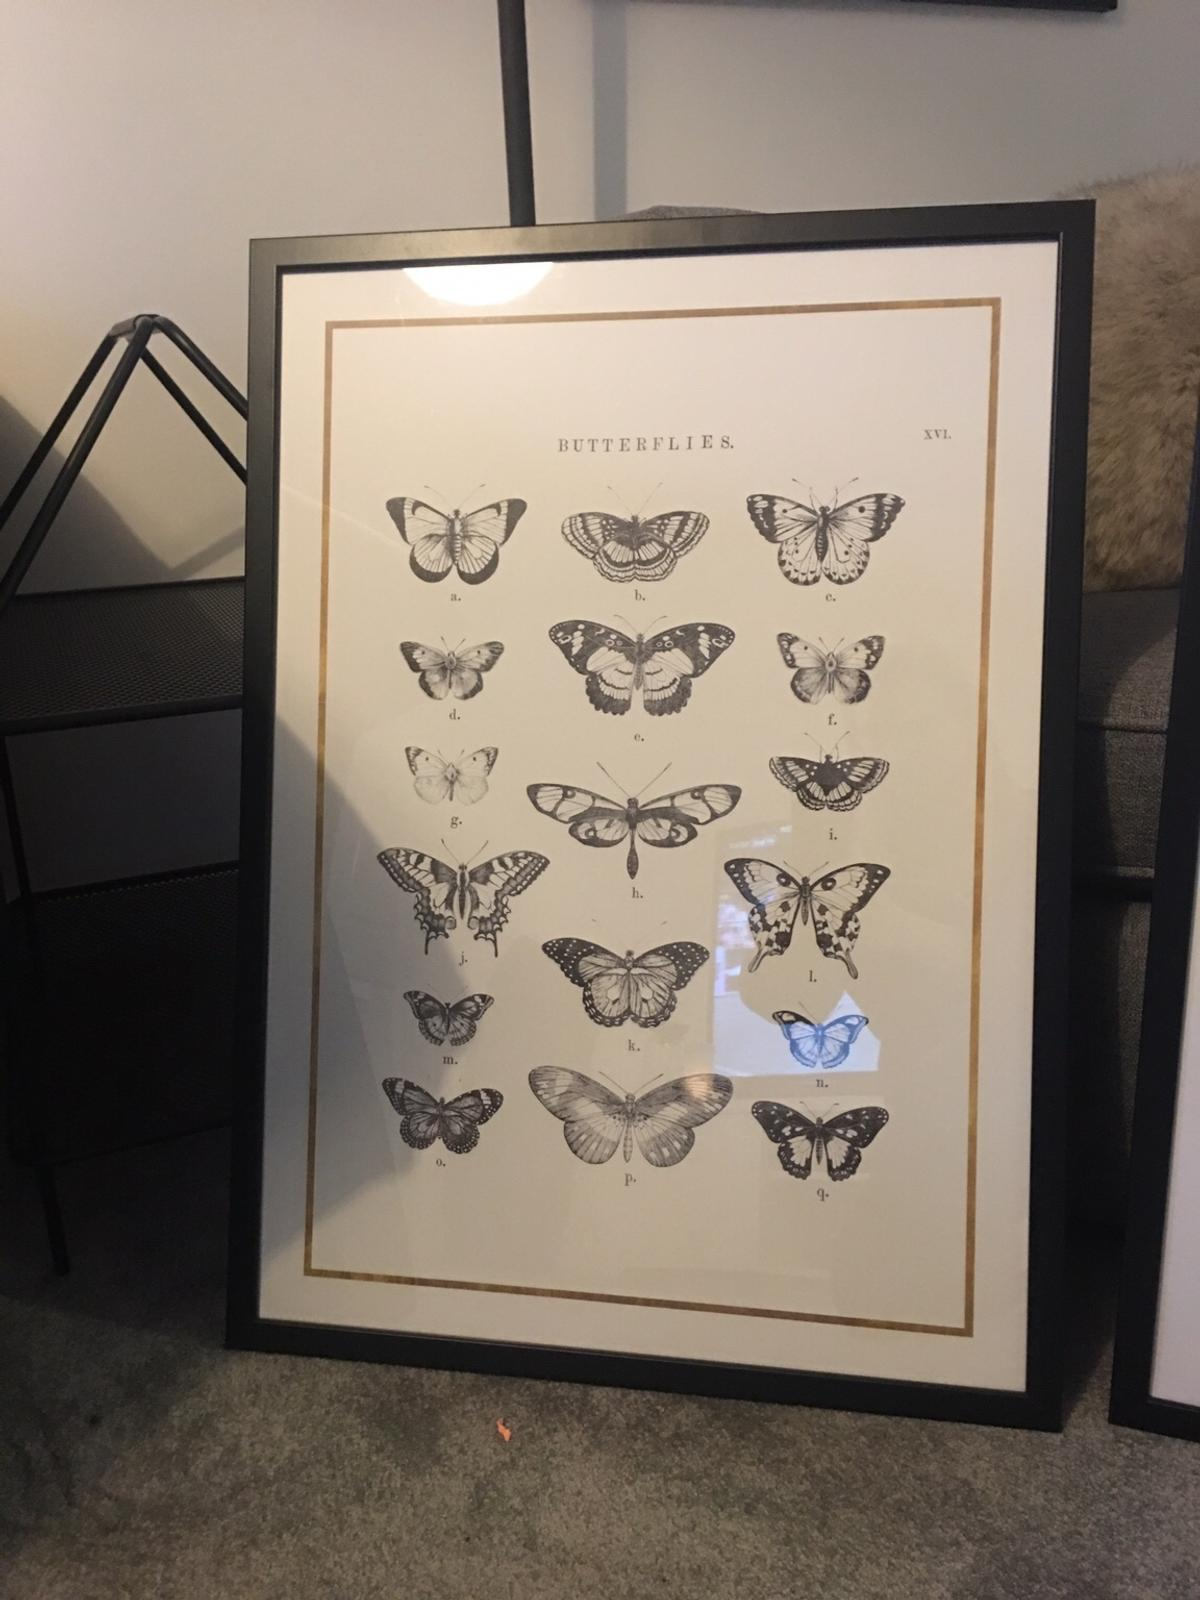 Onwijs X3 framed poster / prints from IKEA 50x70cm in Newcastle upon Tyne BB-67